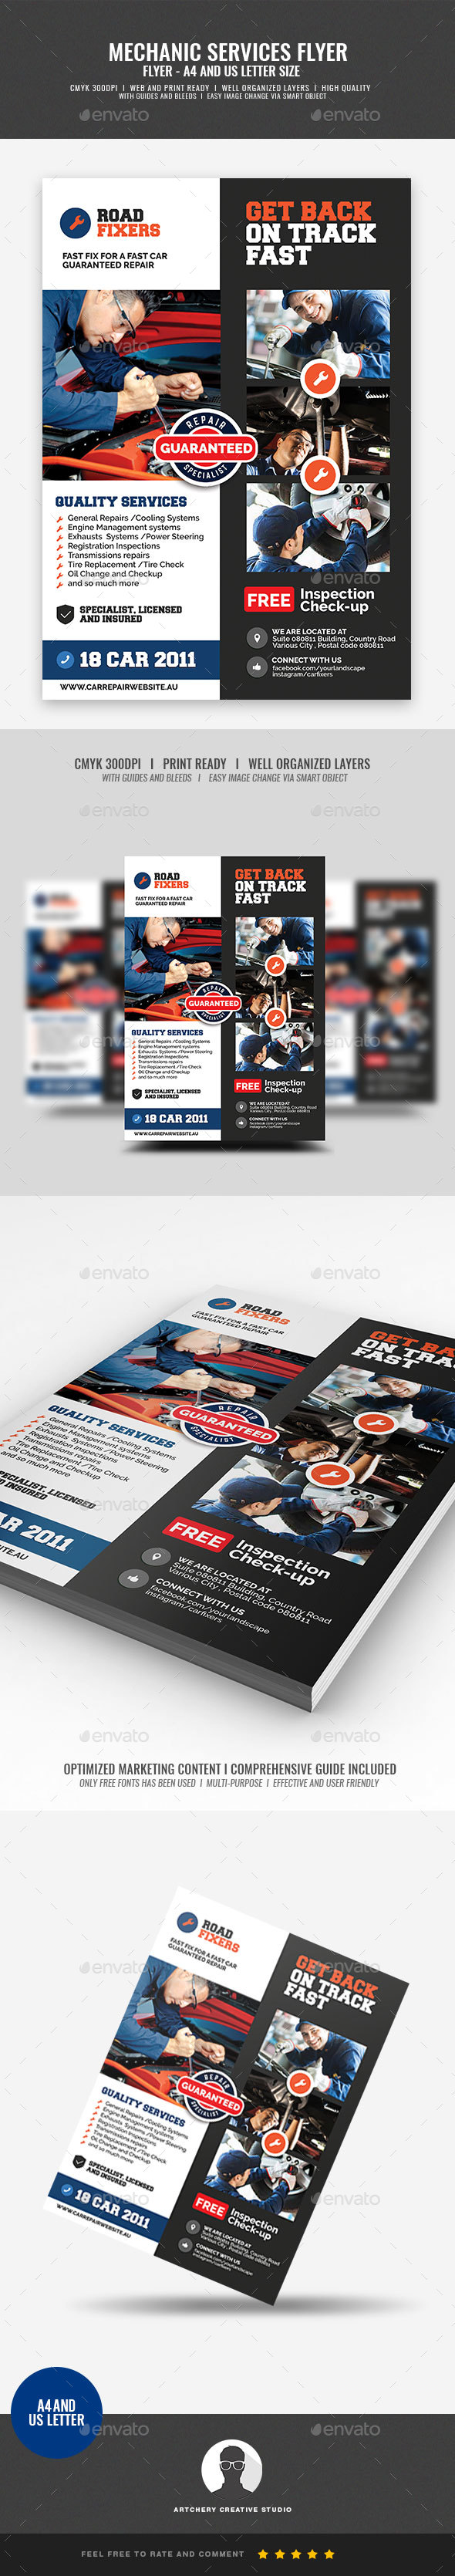 Car Mechanic Service Flyer - Corporate Flyers